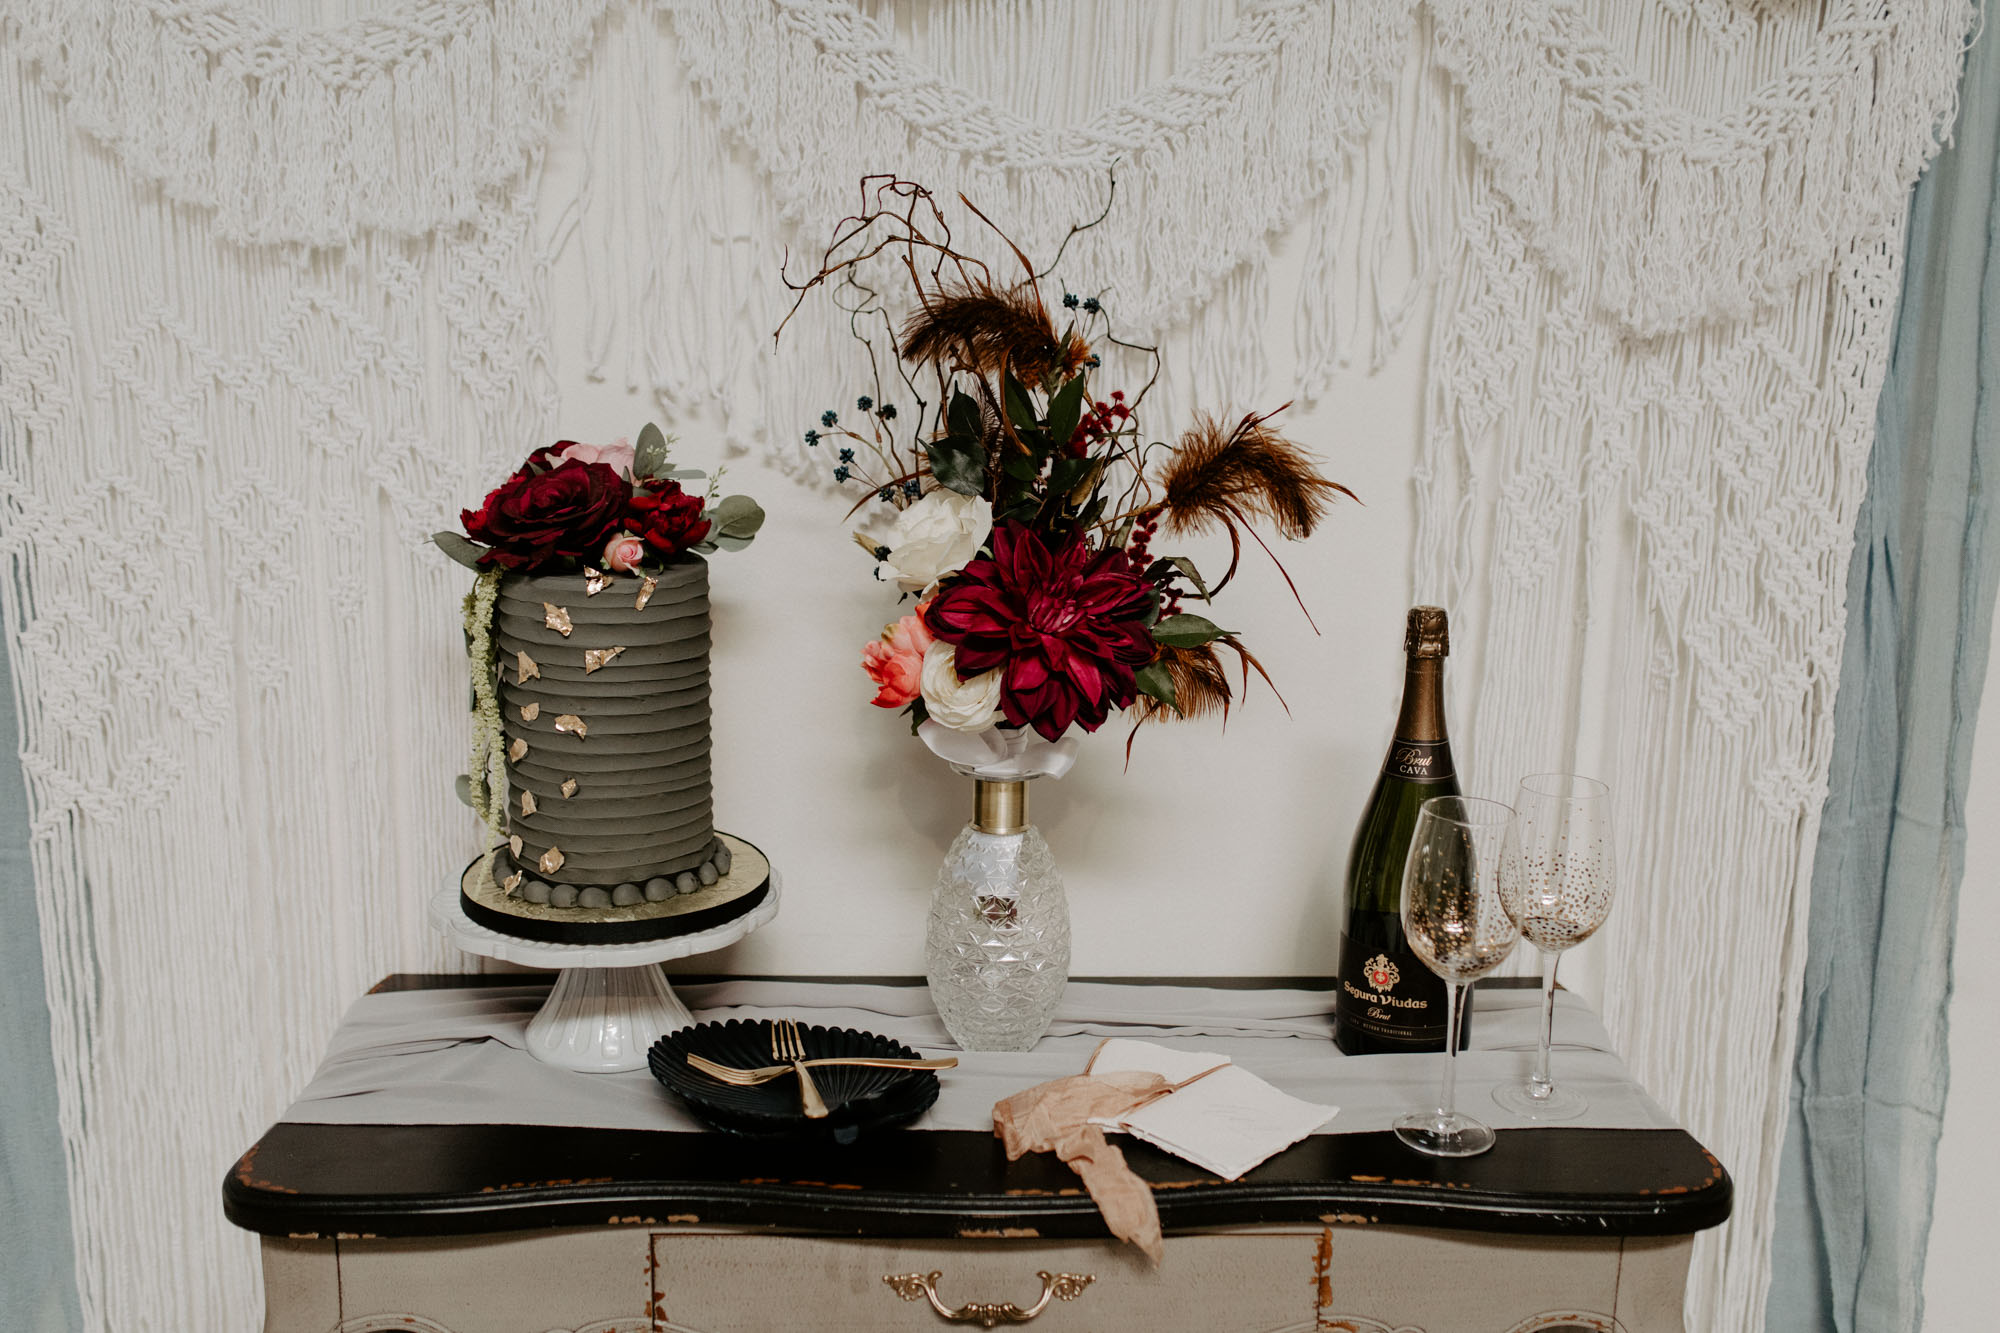 moody cake table with macrame back drop